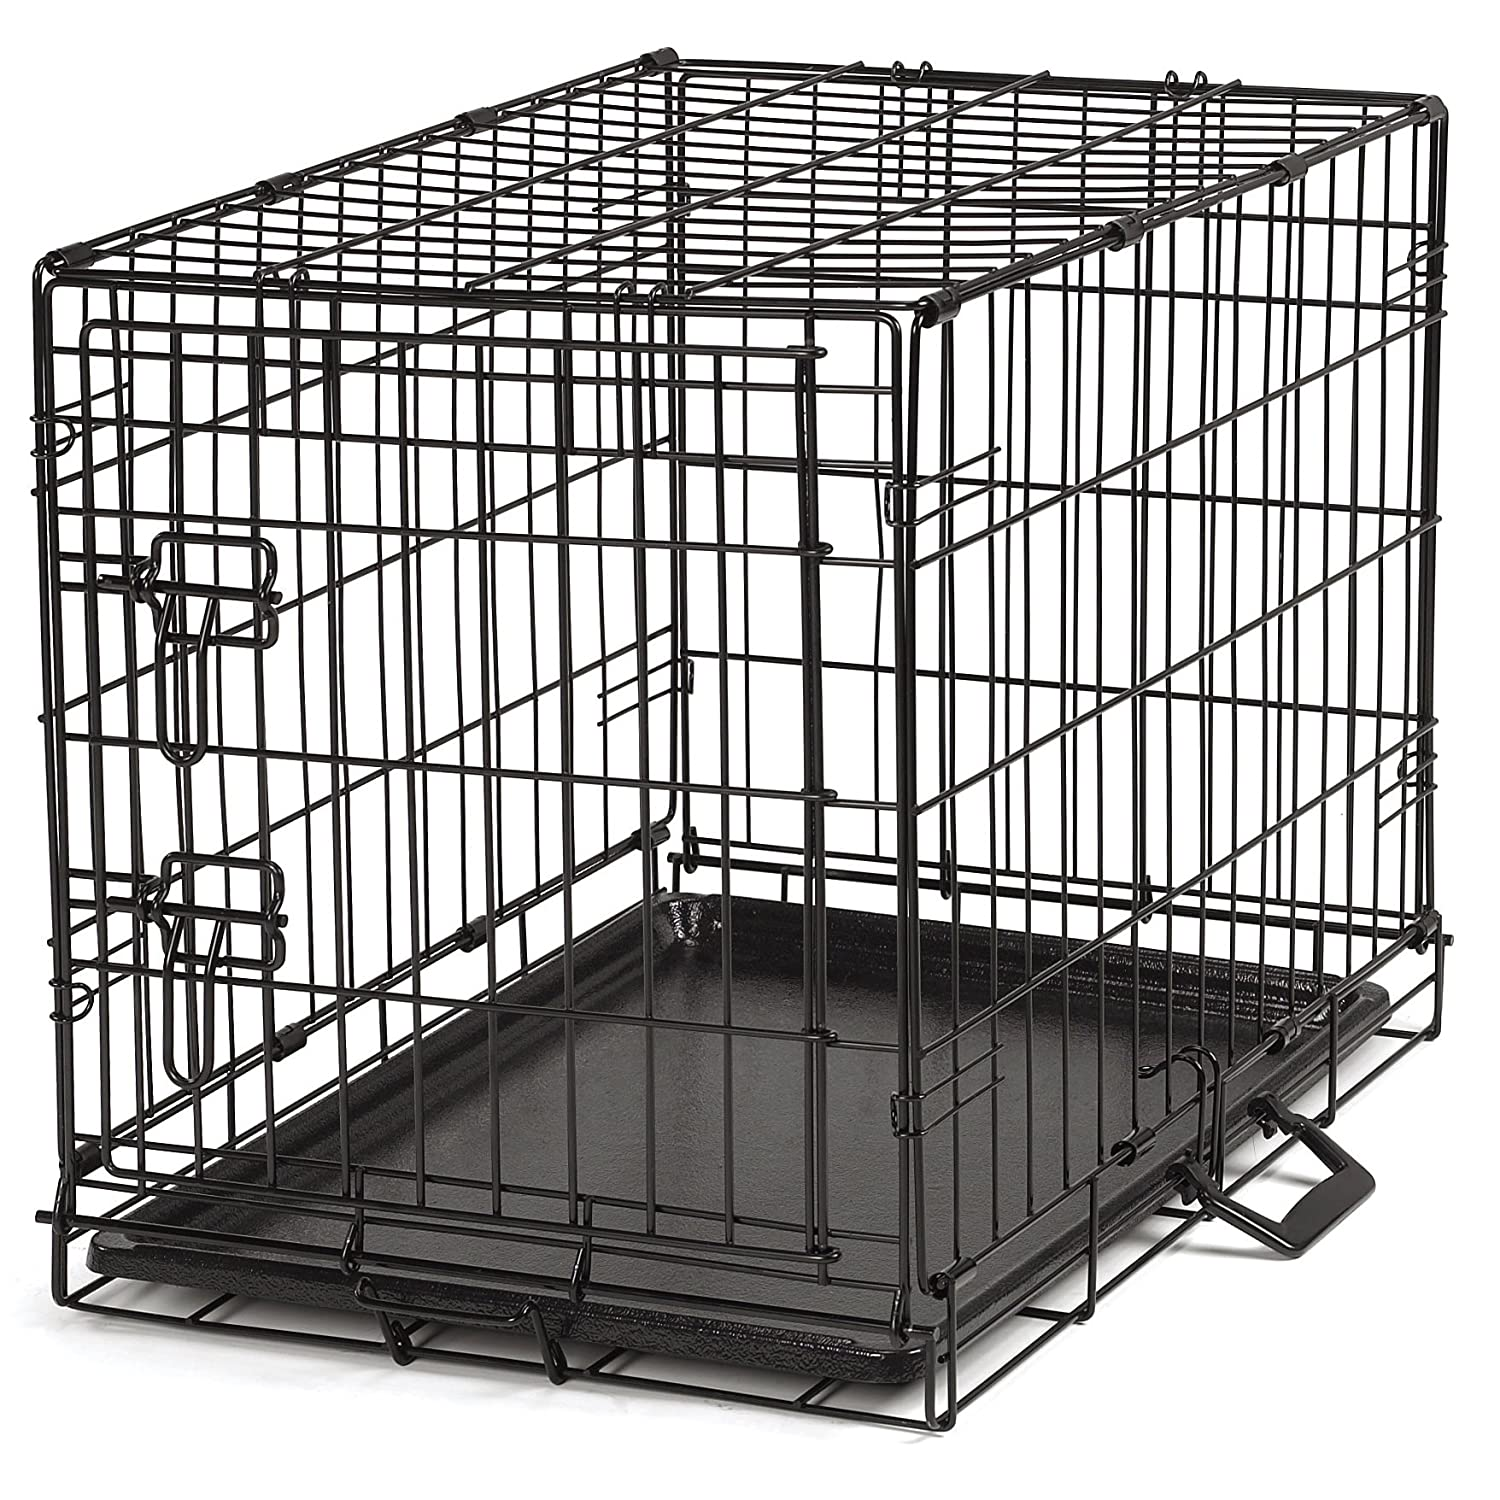 Amazon.com : ProSelect Easy Dog Crates for Dogs and Pets - Black ...